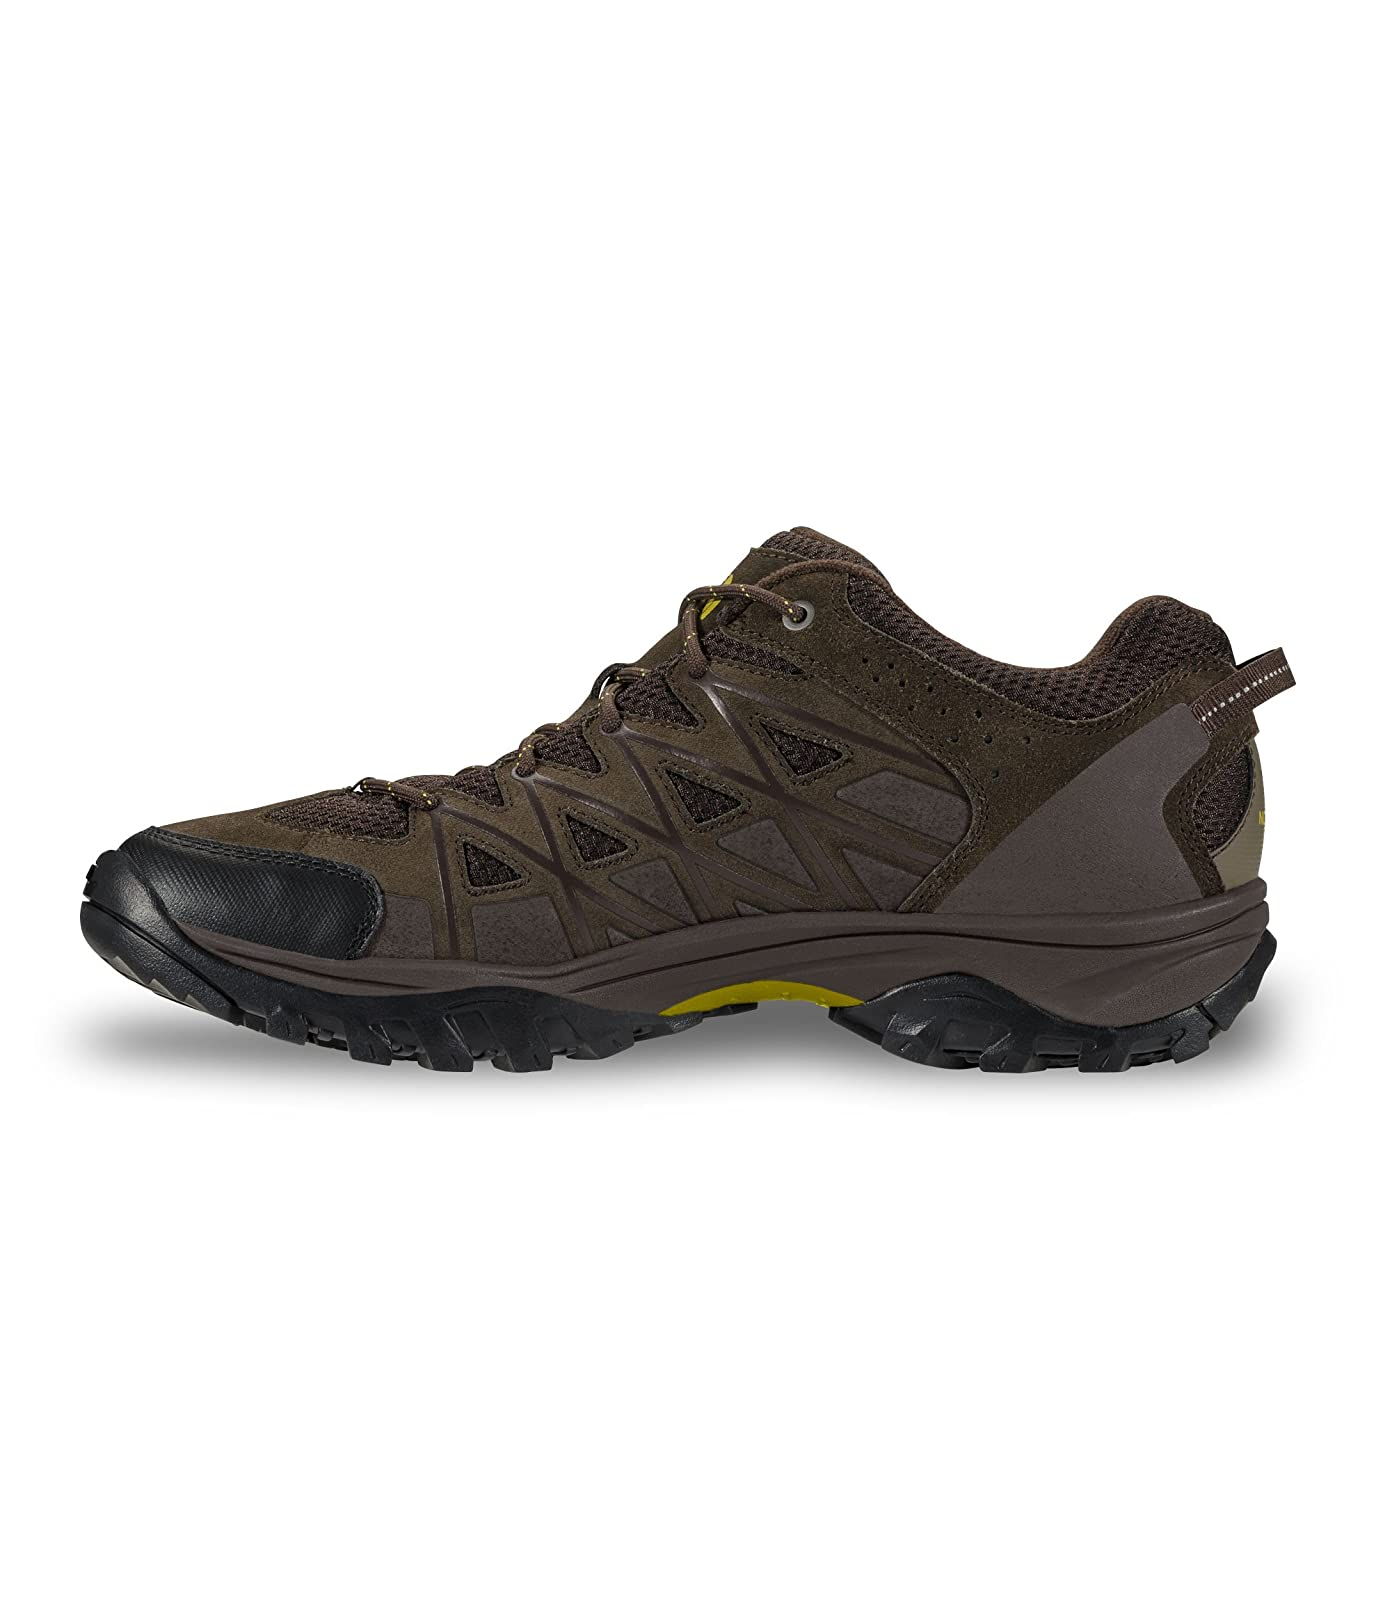 5e512843b The North Face Men's Storm III Hiker A32ZG Coffee Brown/Antique Moss ...